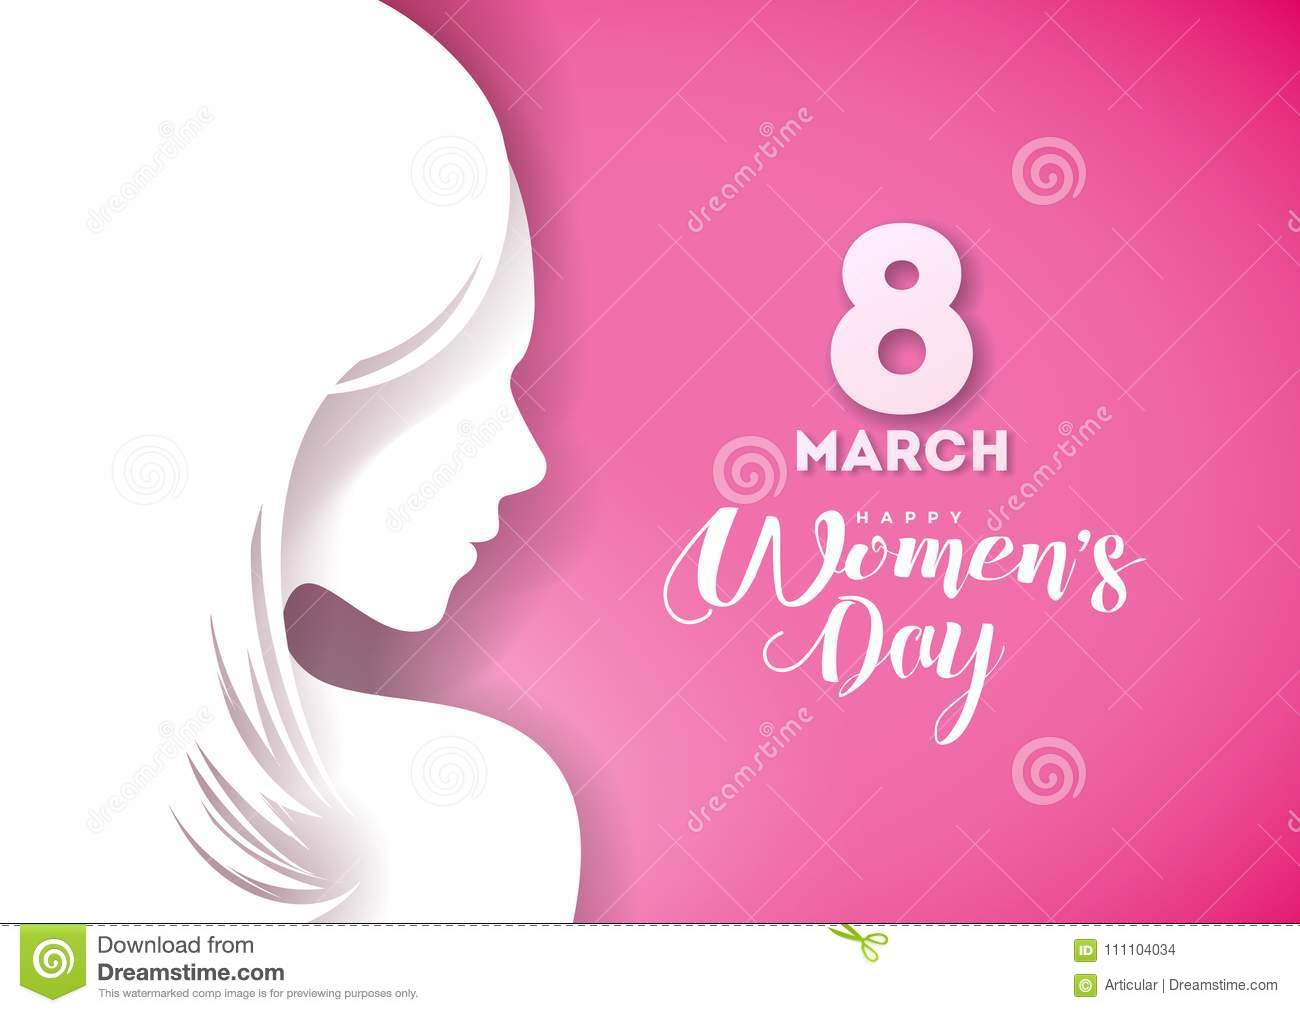 Happy Womens Day Greeting Card Design With Young Woman Silhouette